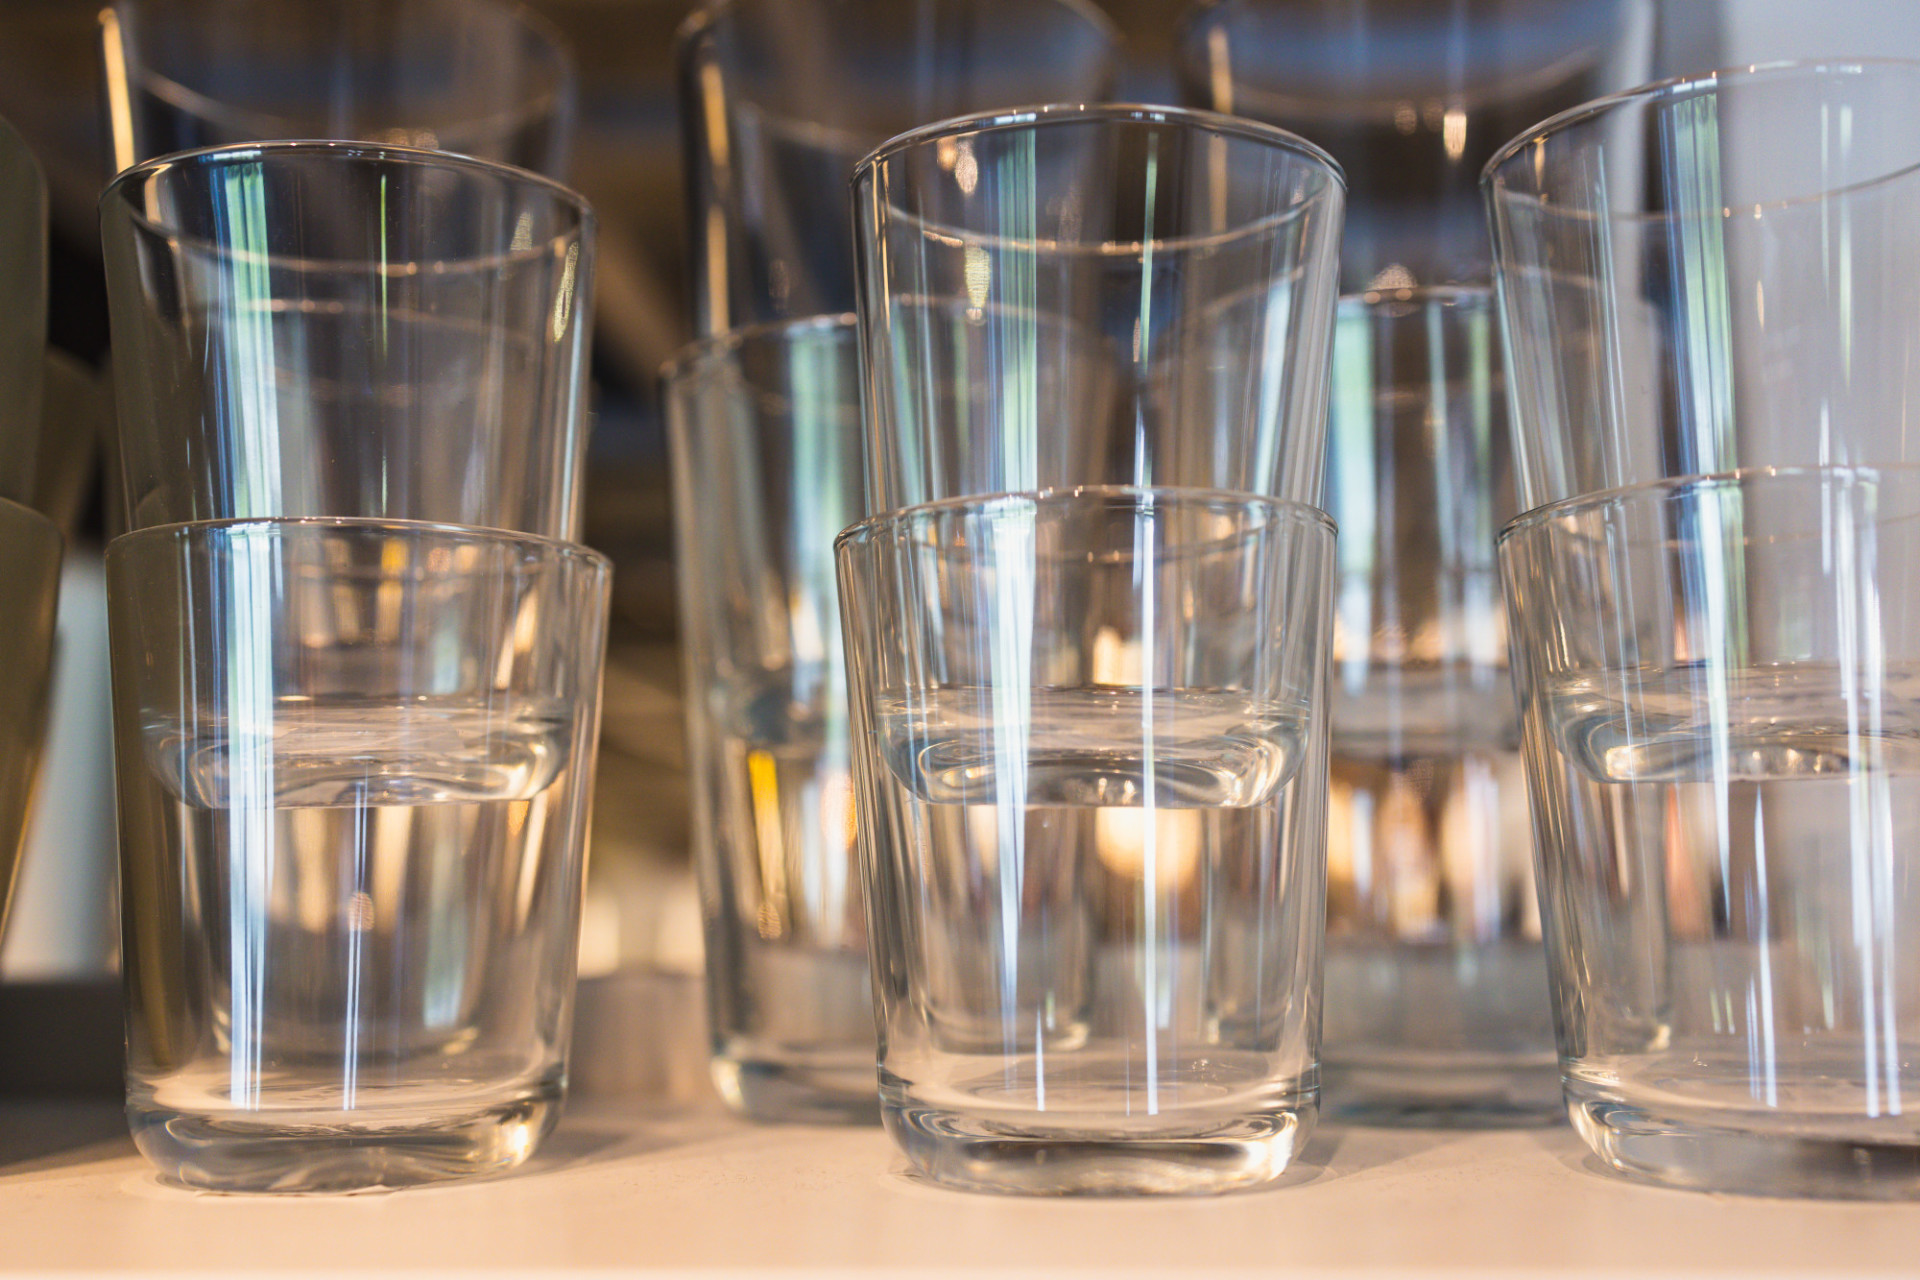 Drinking glasses in kitchen cabinet